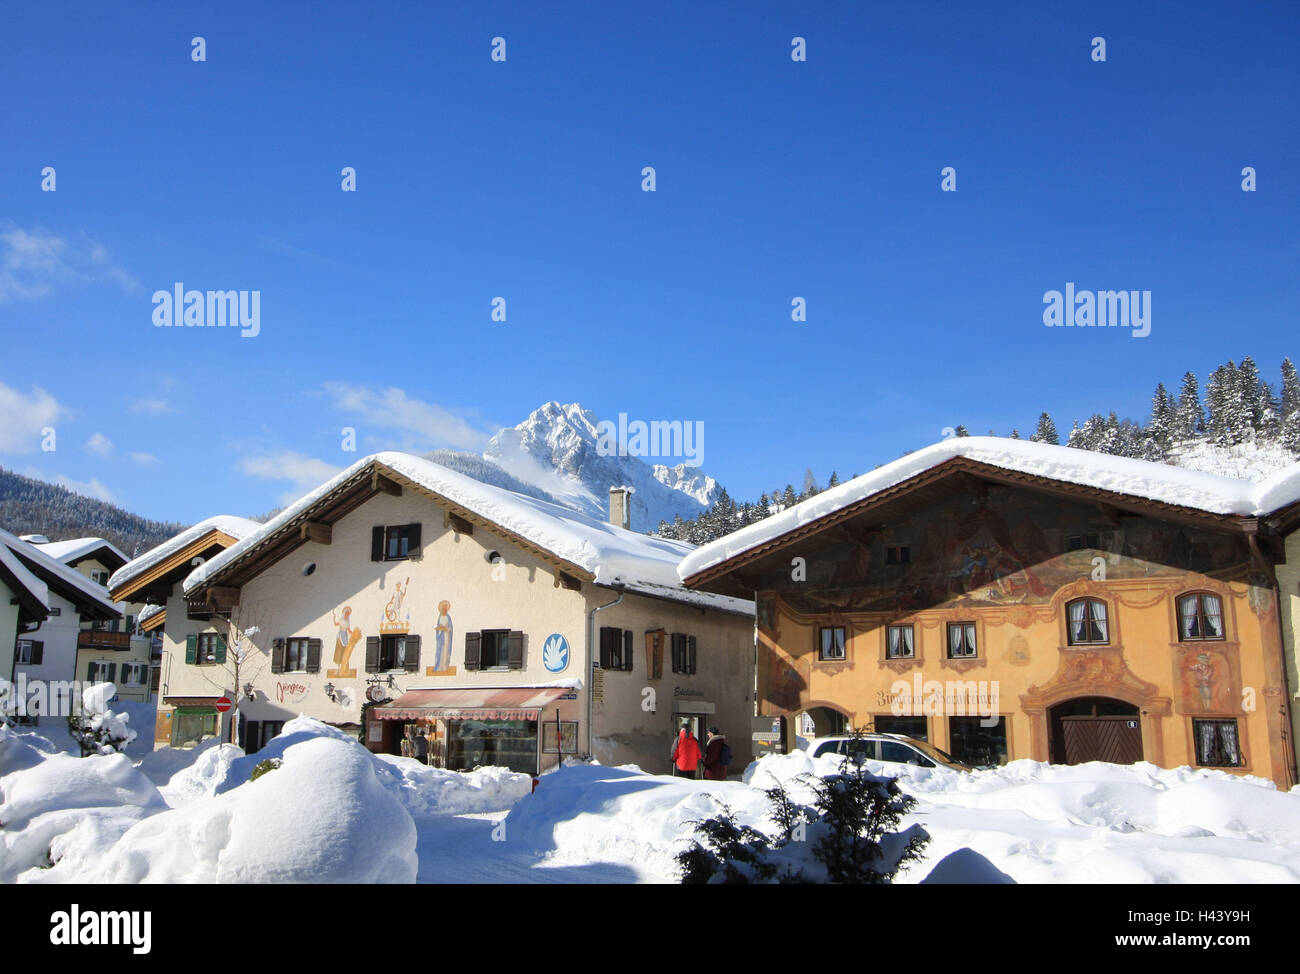 People painting houses - Germany Bavaria Mittenwald District Semolina Houses Facade Painting Tourist Snow South Germany Upper Bavaria Werdenfels Place Residential Houses